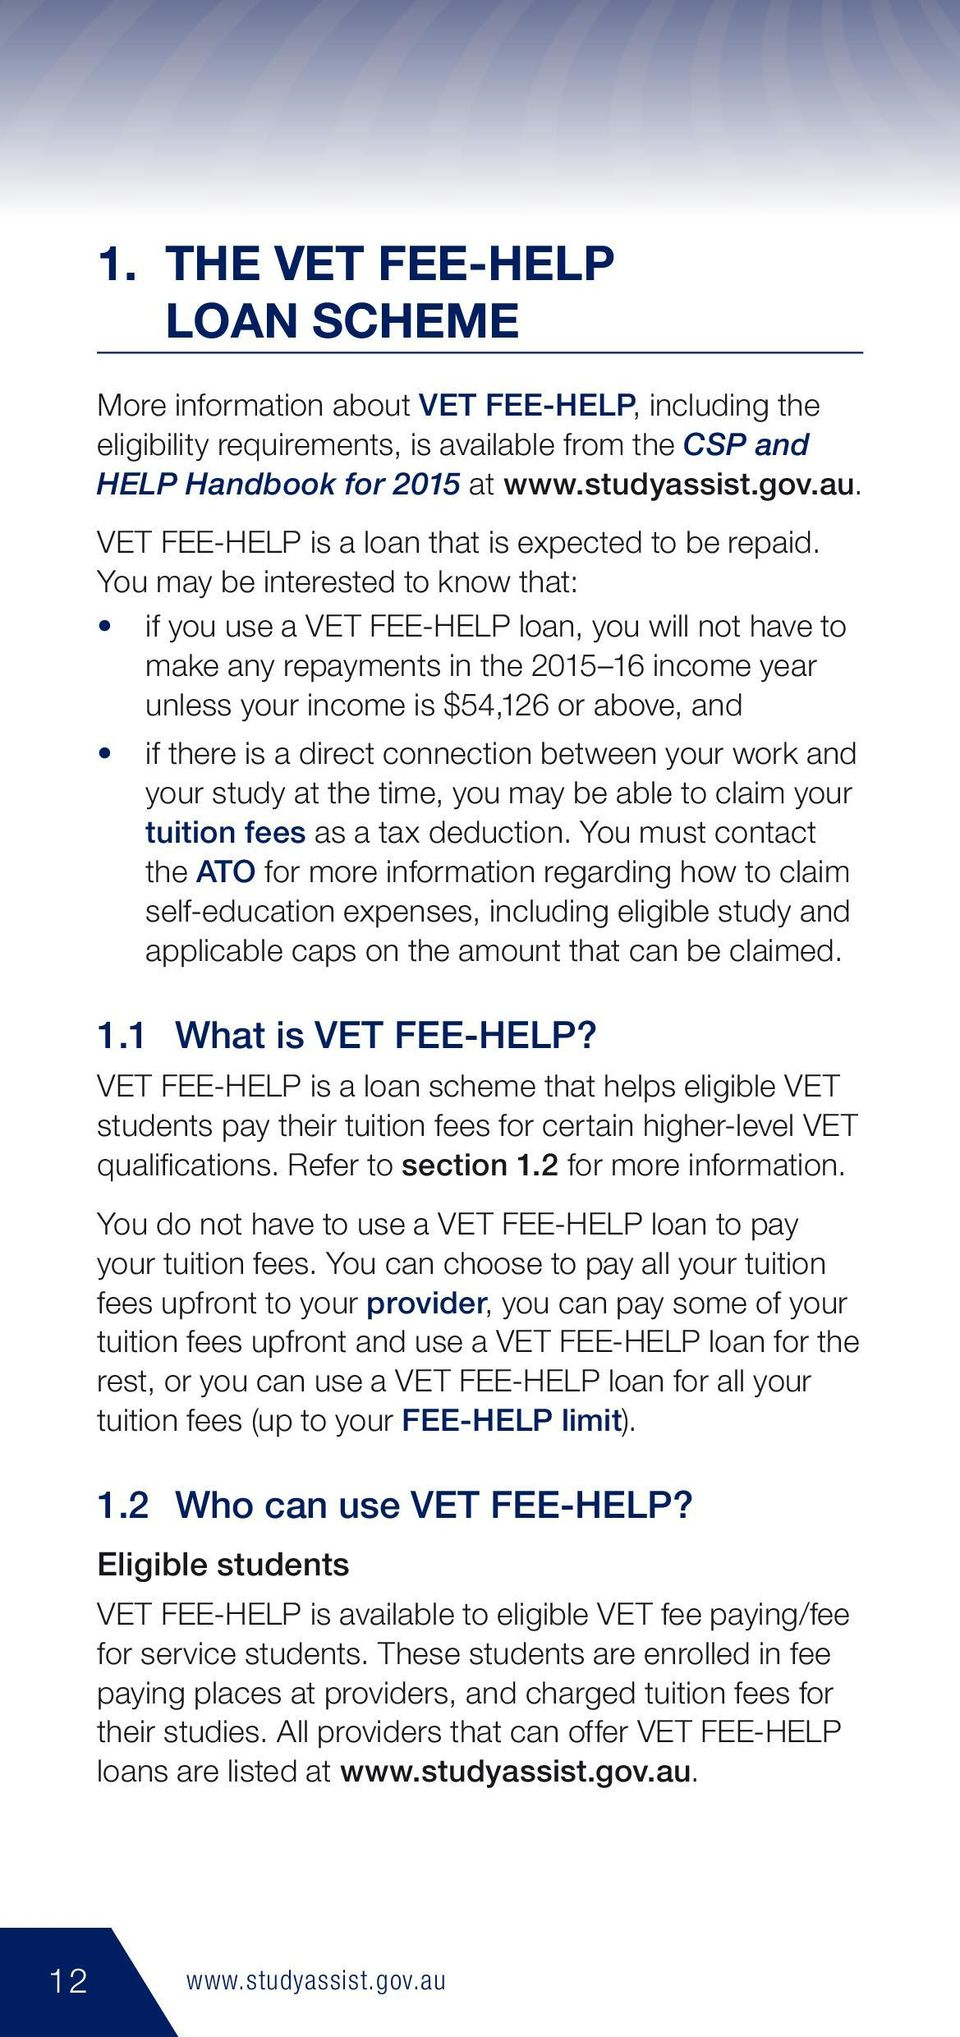 You may be interested to know that: if you use a VET FEE-HELP loan, you will not have to make any repayments in the 2015 16 income year unless your income is $54,126 or above, and if there is a